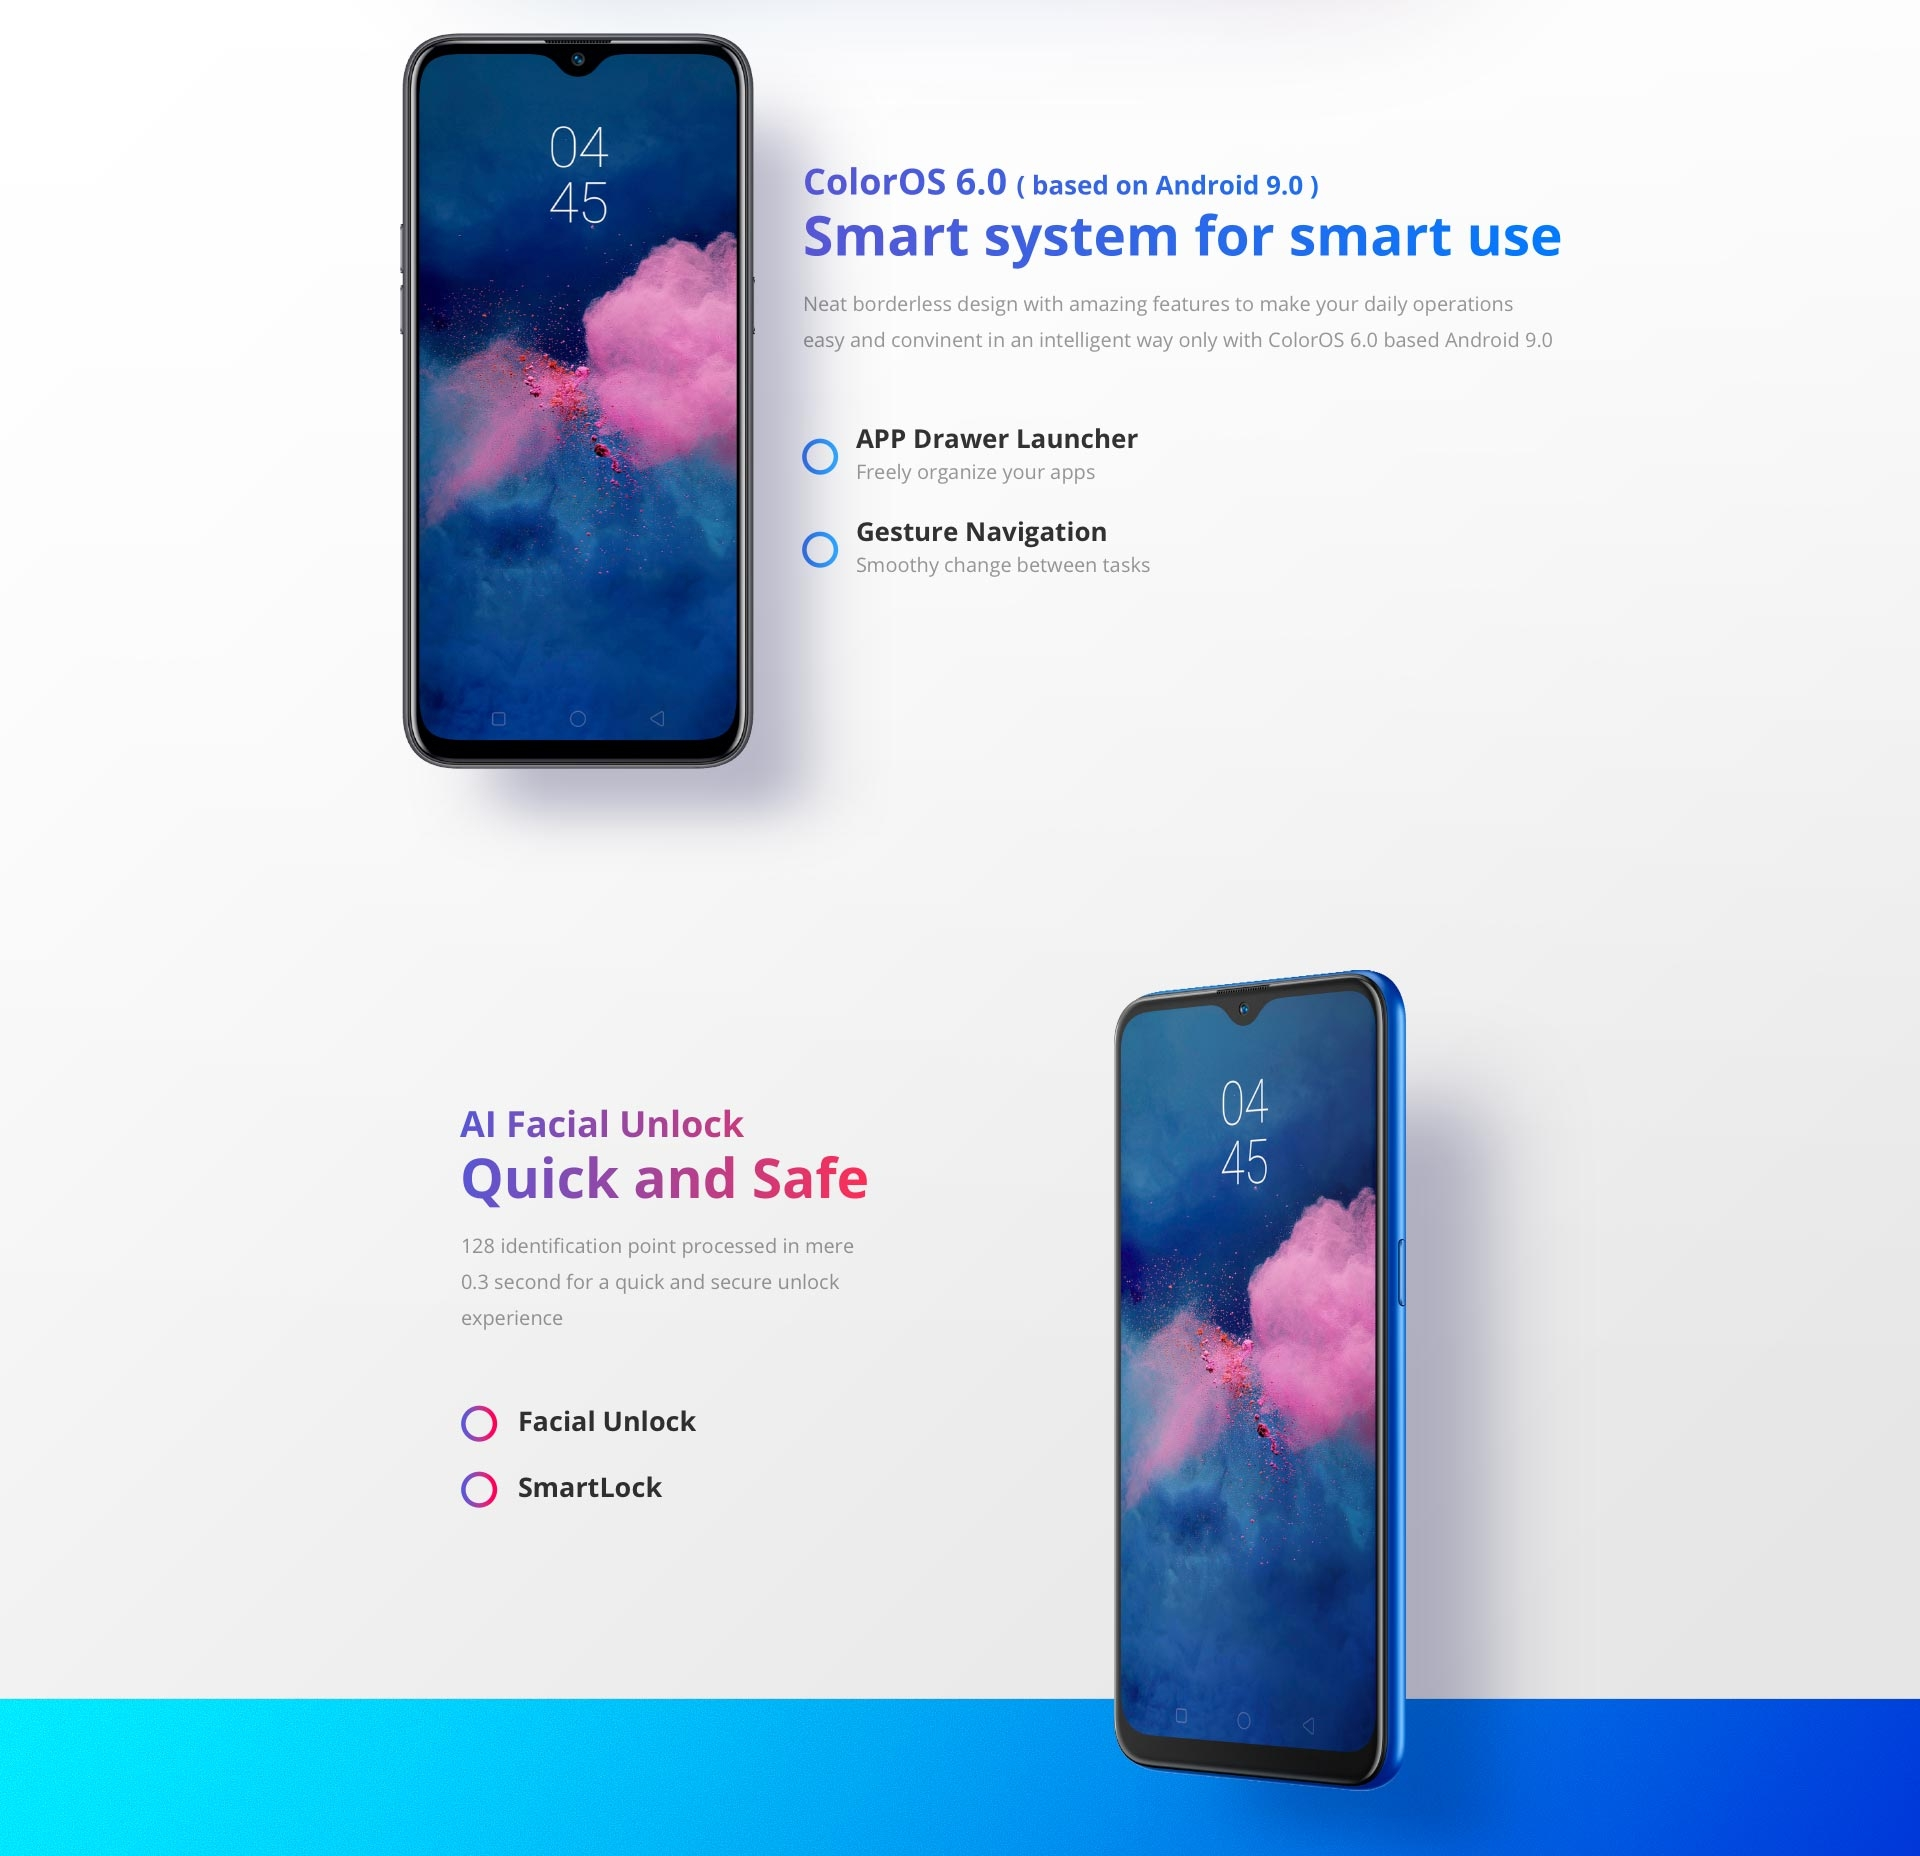 Shop New Realme C2 Online - Buy C2 at Best Price Today - Jumia Egypt